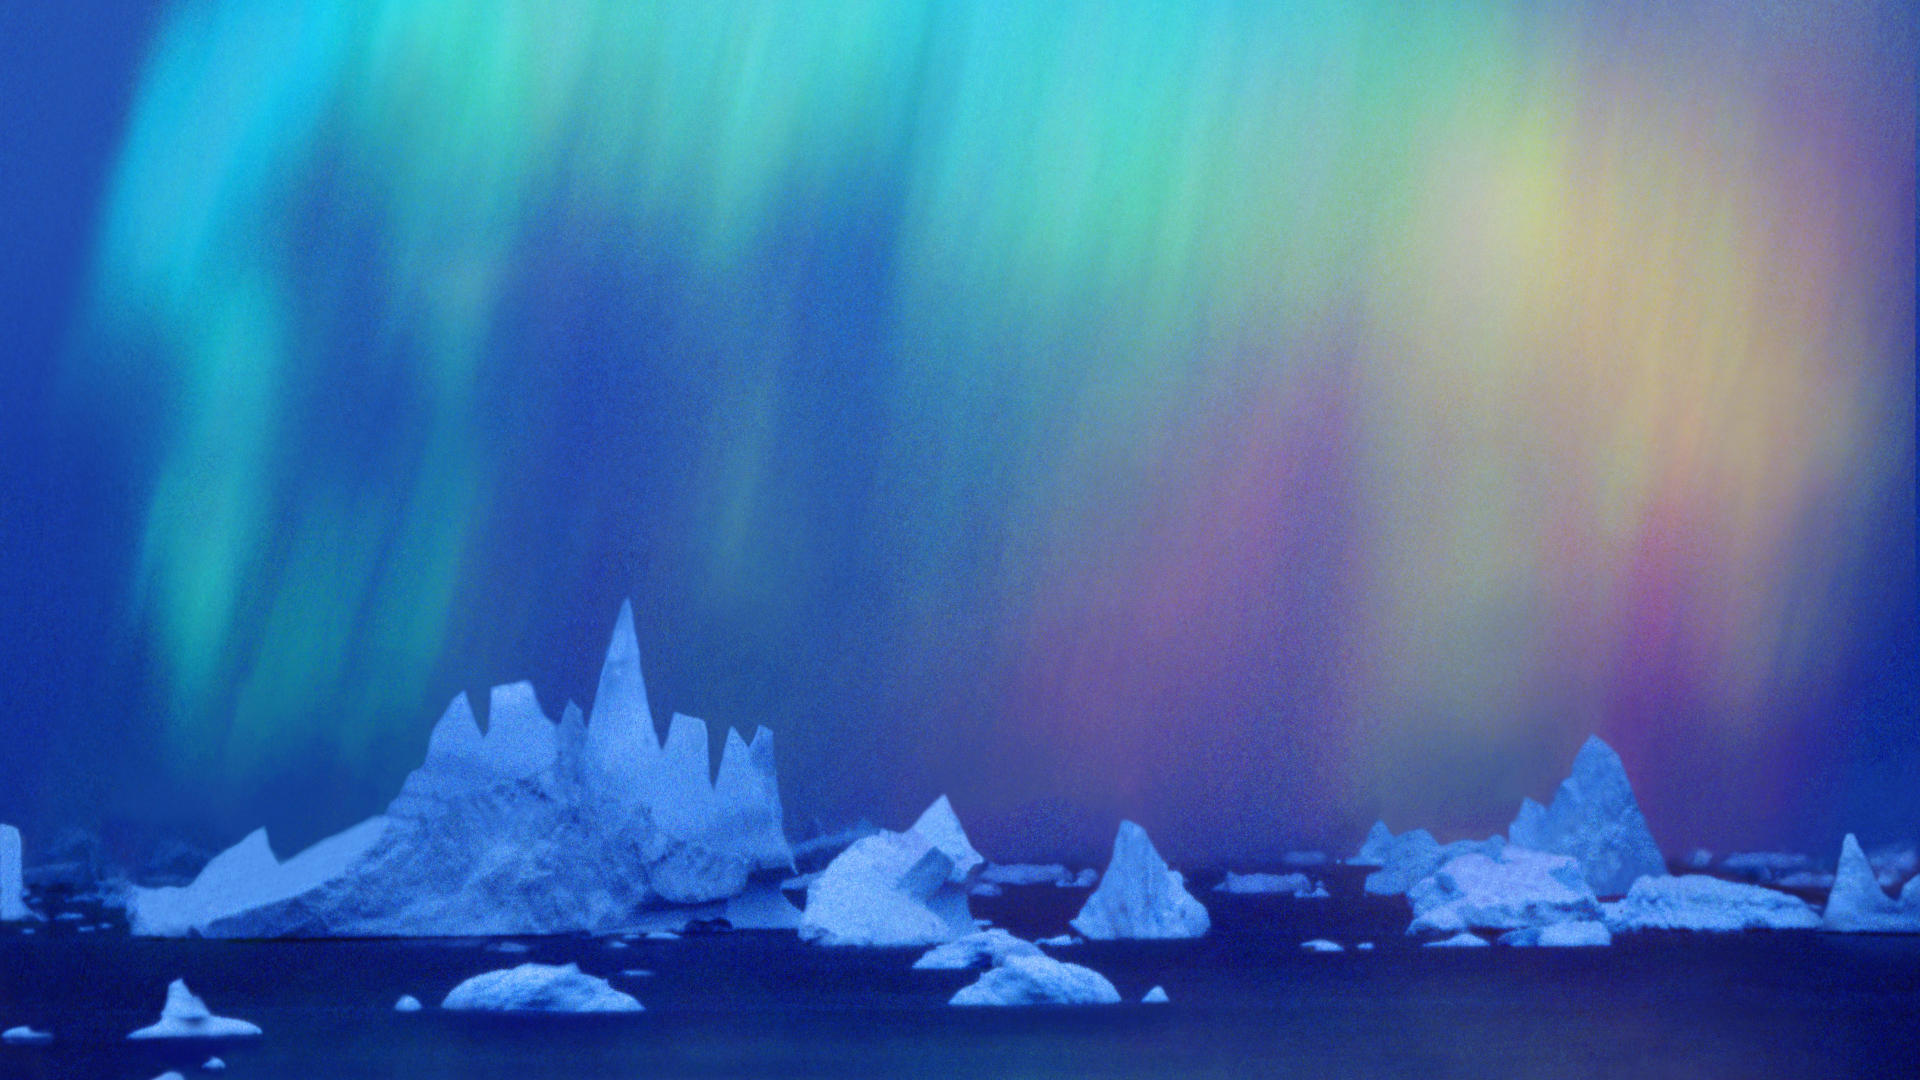 Cool Backgrounds Antarctica Region Background L Sea Aurora Australis 1920x1080